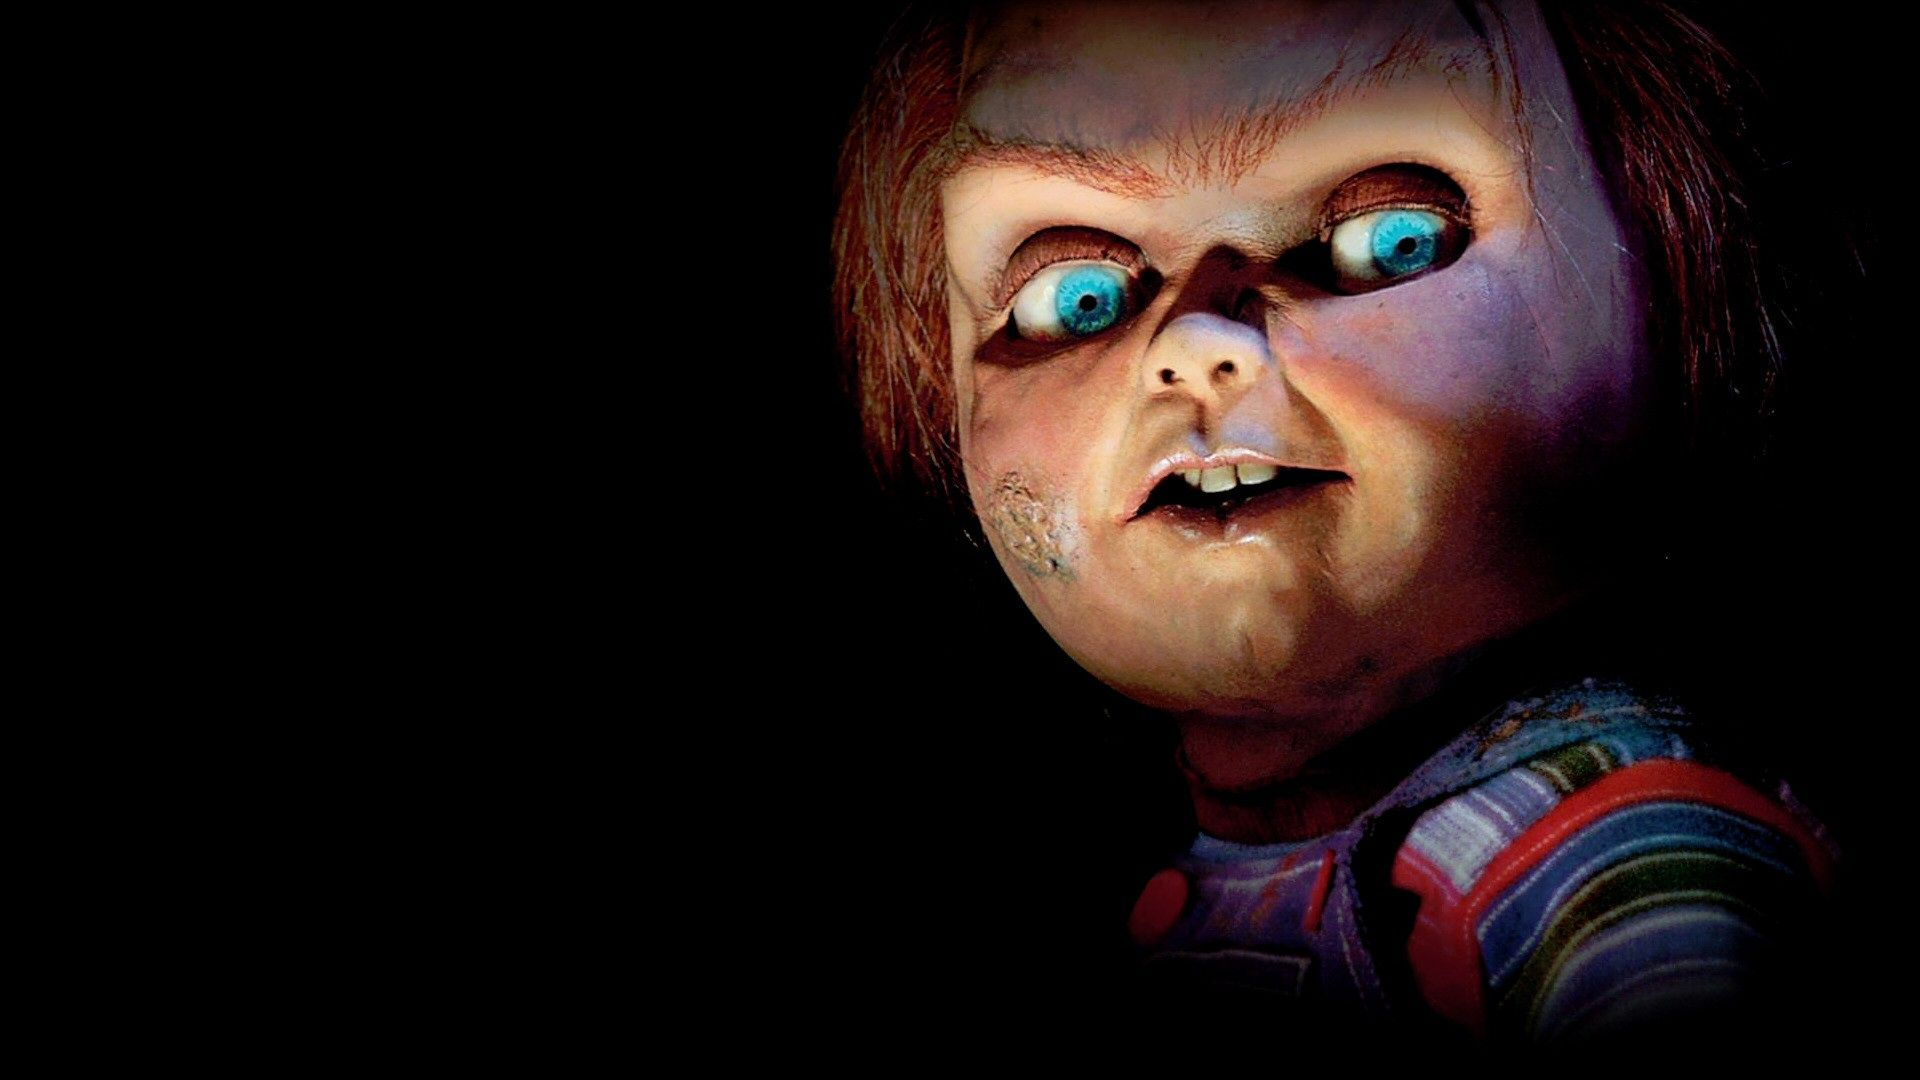 Children Playing News Two New Child S Play Movies On The Way Deadly Movies Child S Play Movie Childs Play Chucky Chucky Movies